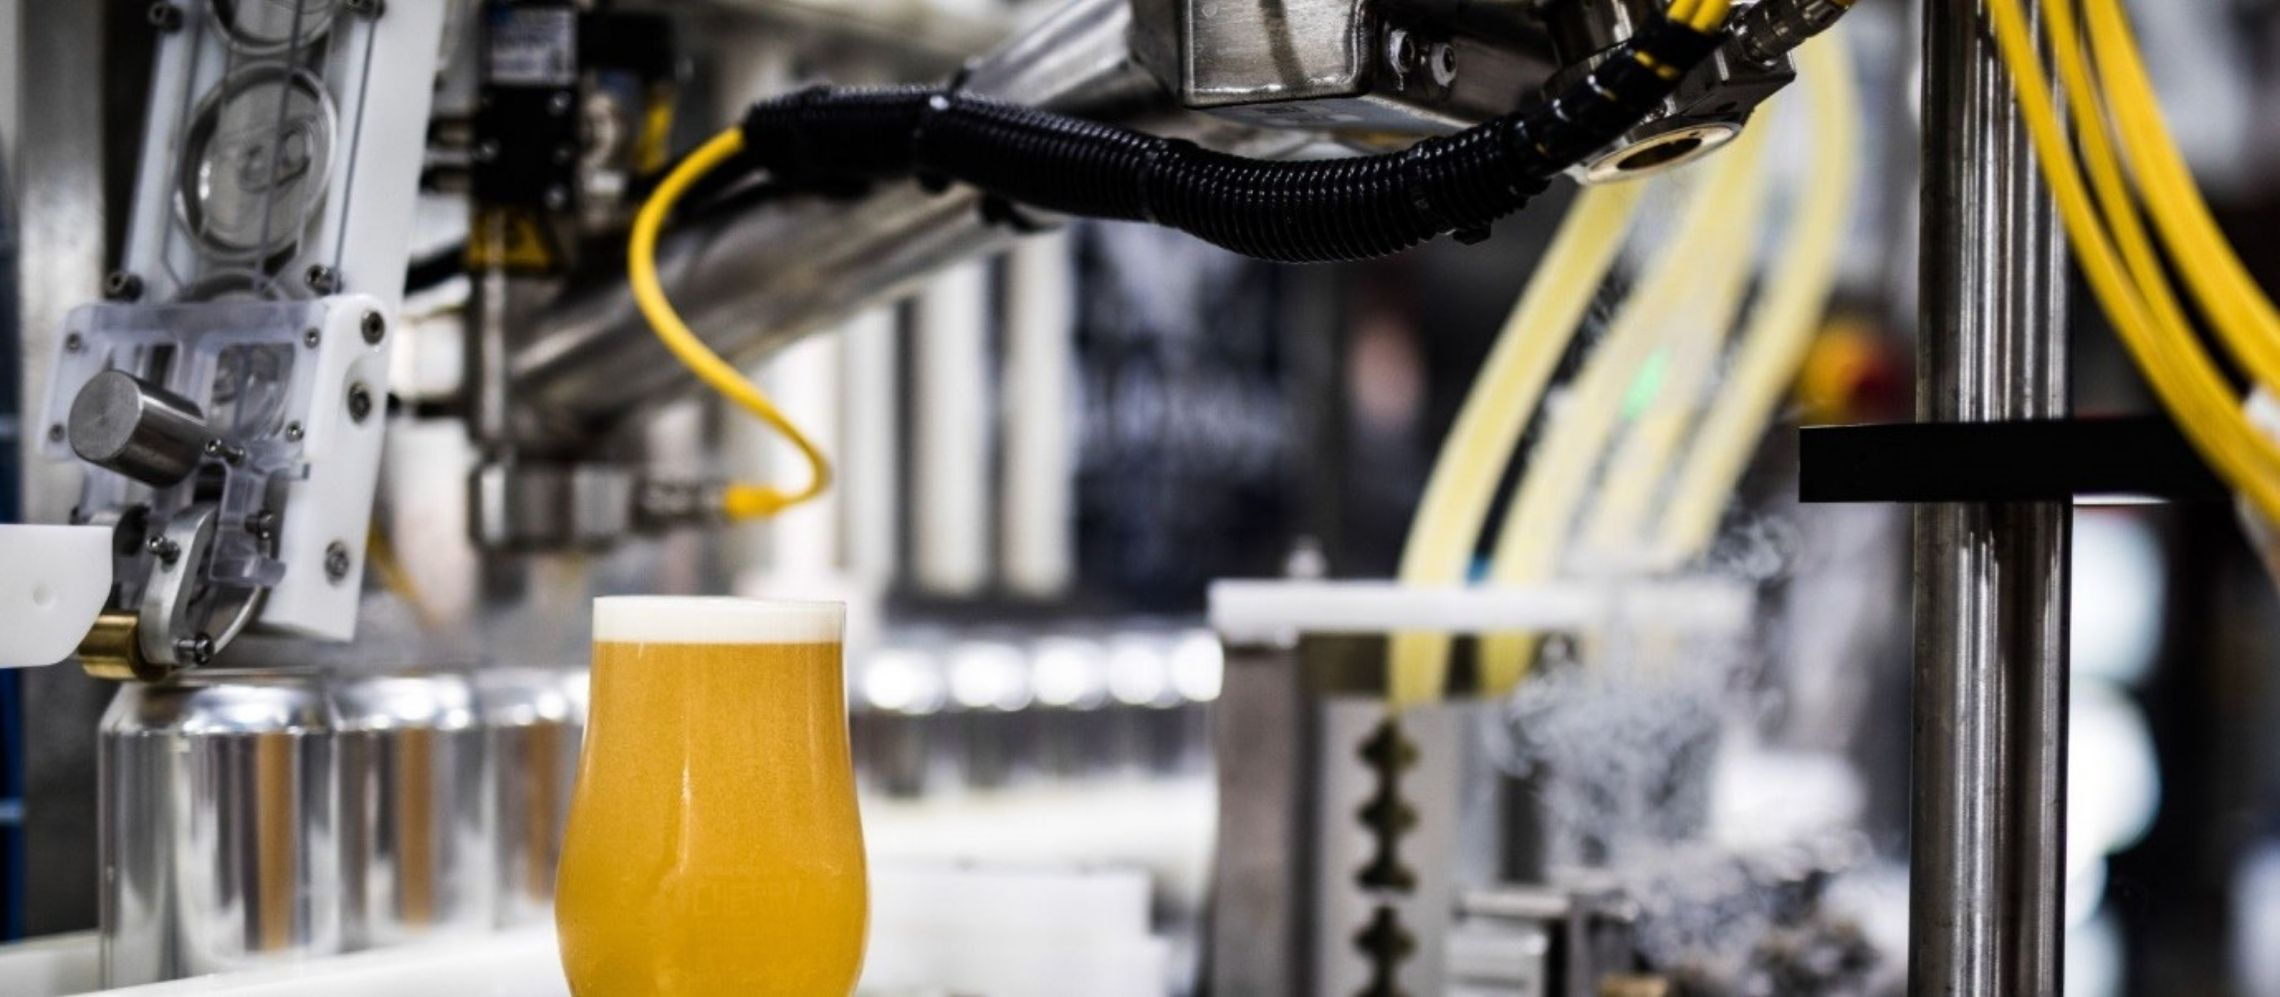 Photo for: The Rise of Craft Beer in the UK